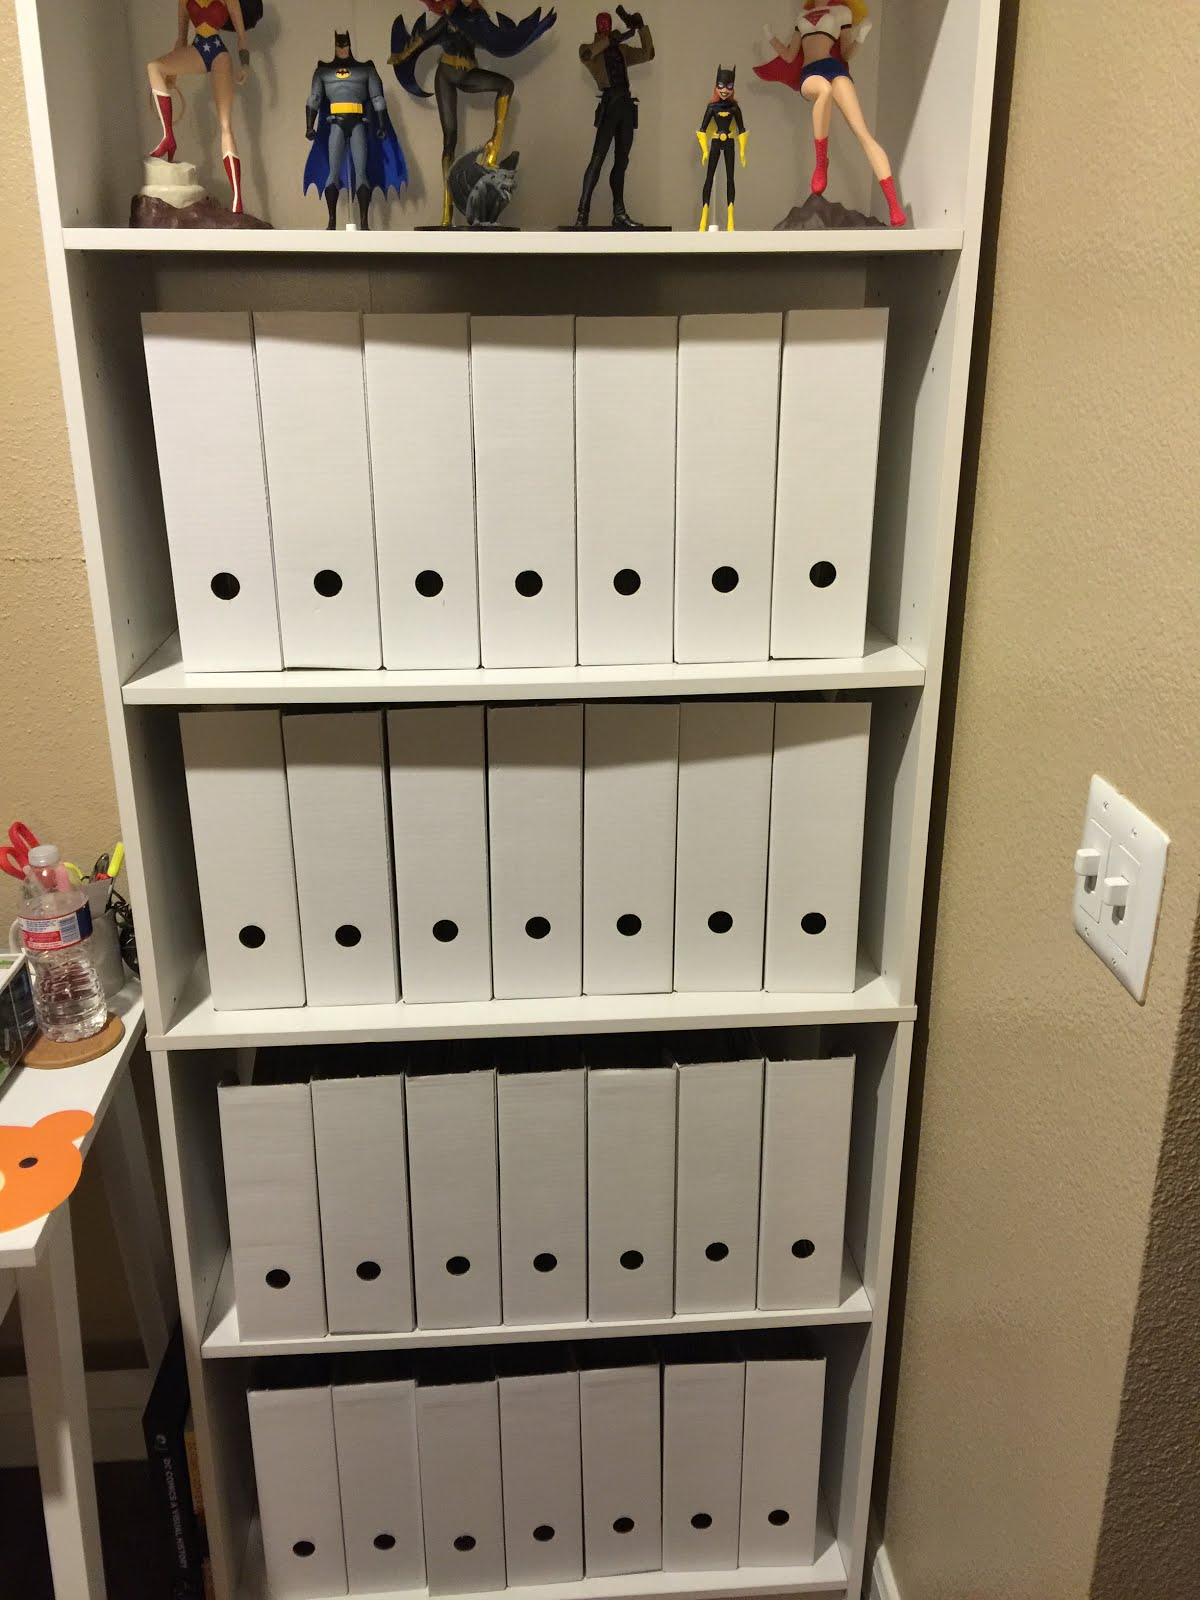 Easy Crafting with Kayla: Creative Comic Book Storage